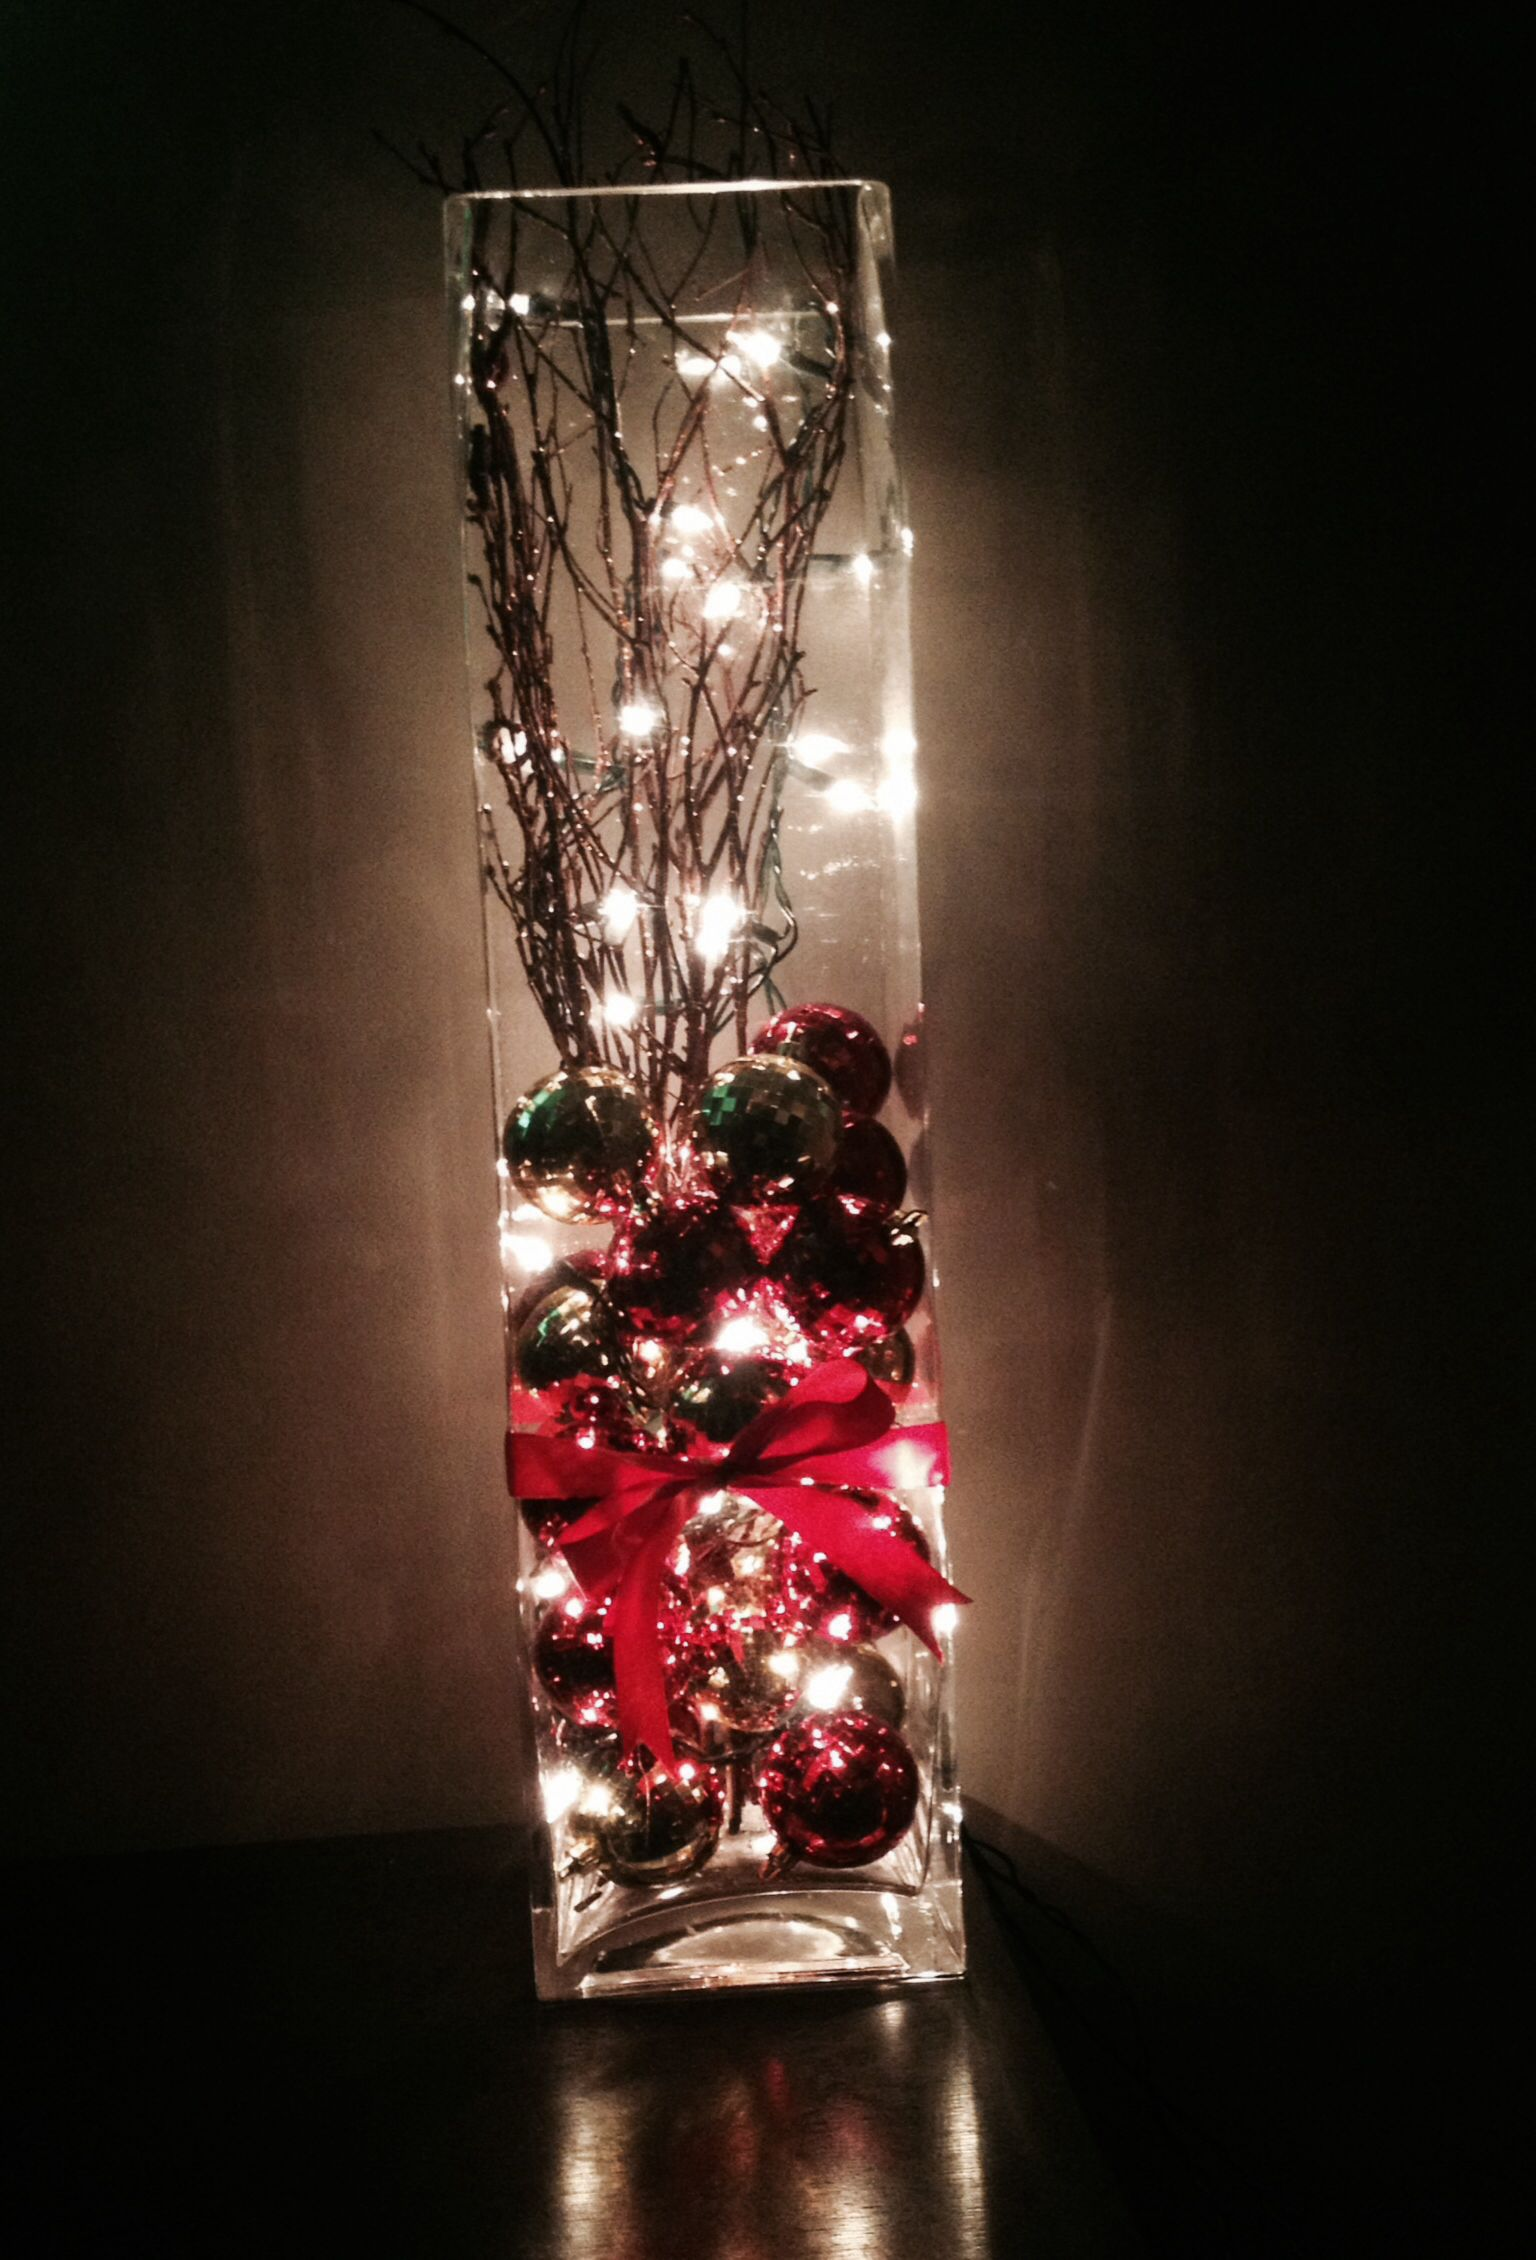 Homemade Christmas decor. Made with left over lights and bulbs ...